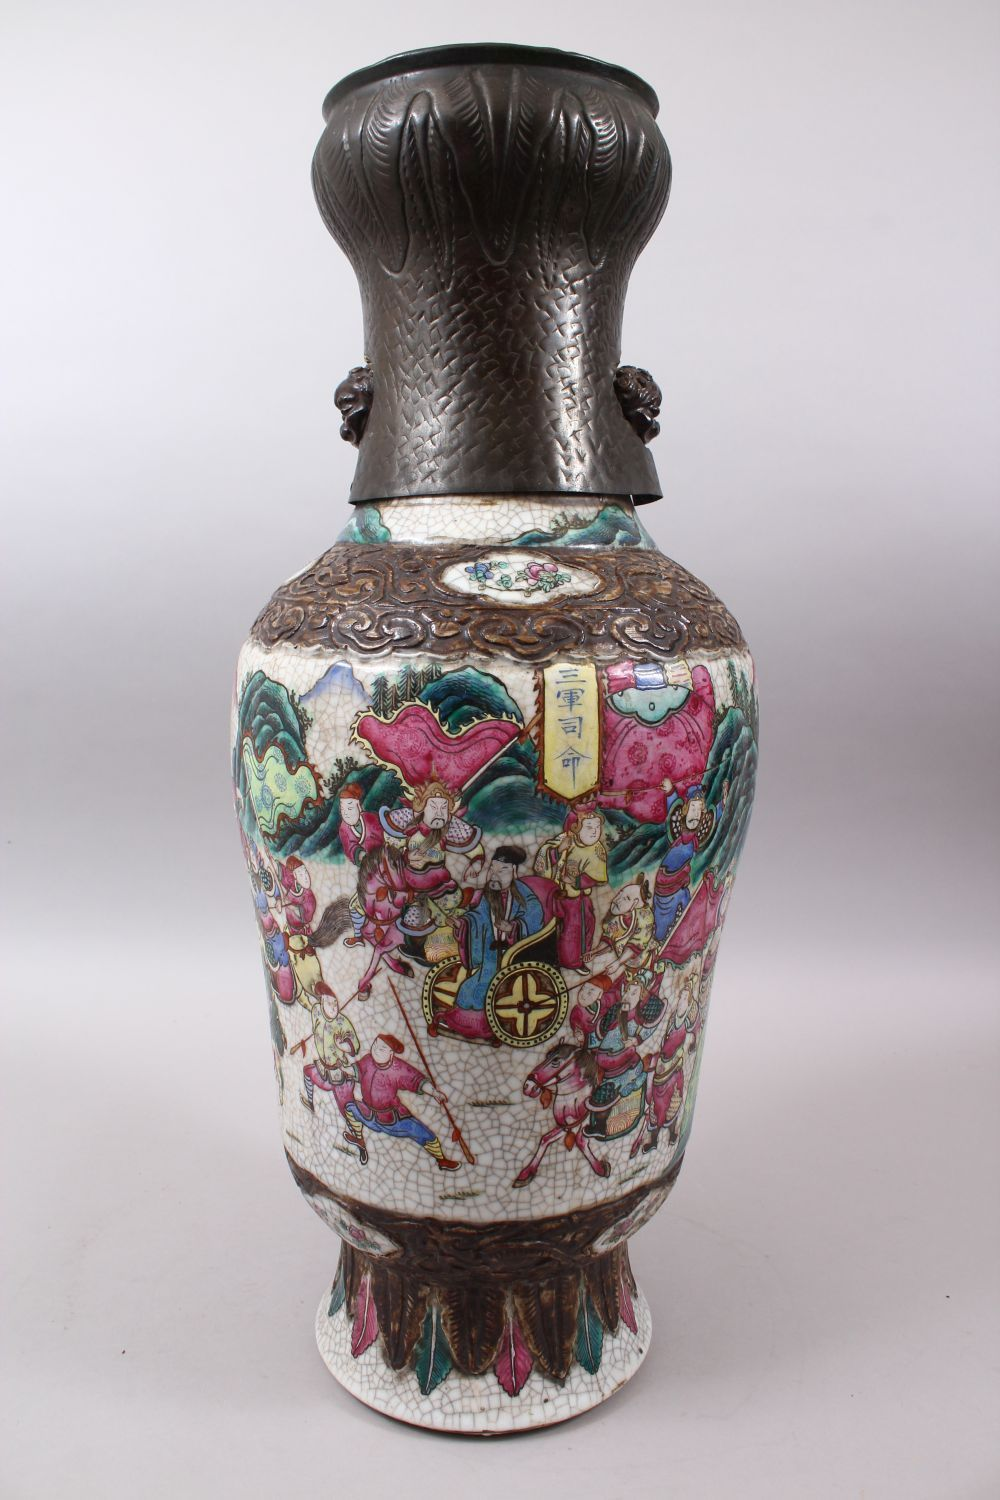 A 19TH CENTURY CHINESE FAMILLE ROSE CRACKLE GLAZED PORCELAIN VASE, painted with a battle scene, - Image 3 of 8